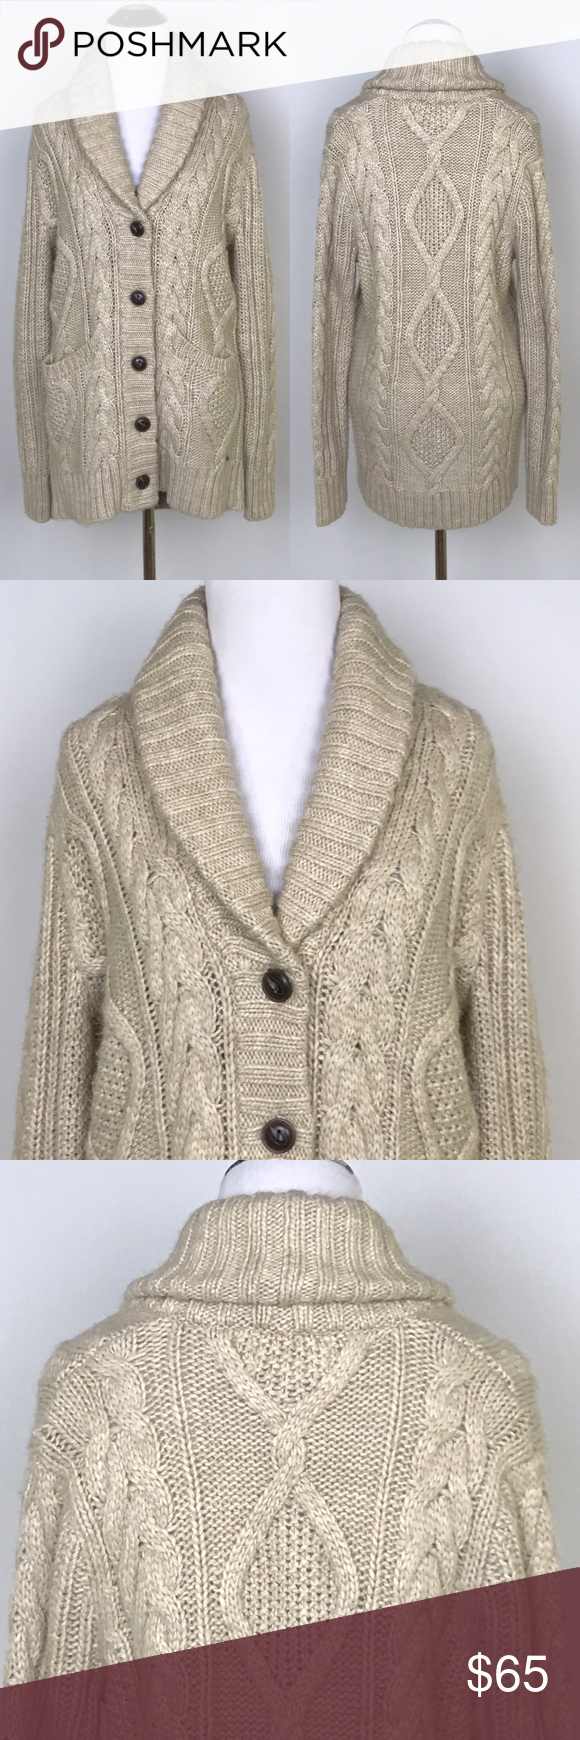 Denim & Supply] Boyfriend Cable Knit Cardigan Tan Chunky knit ...